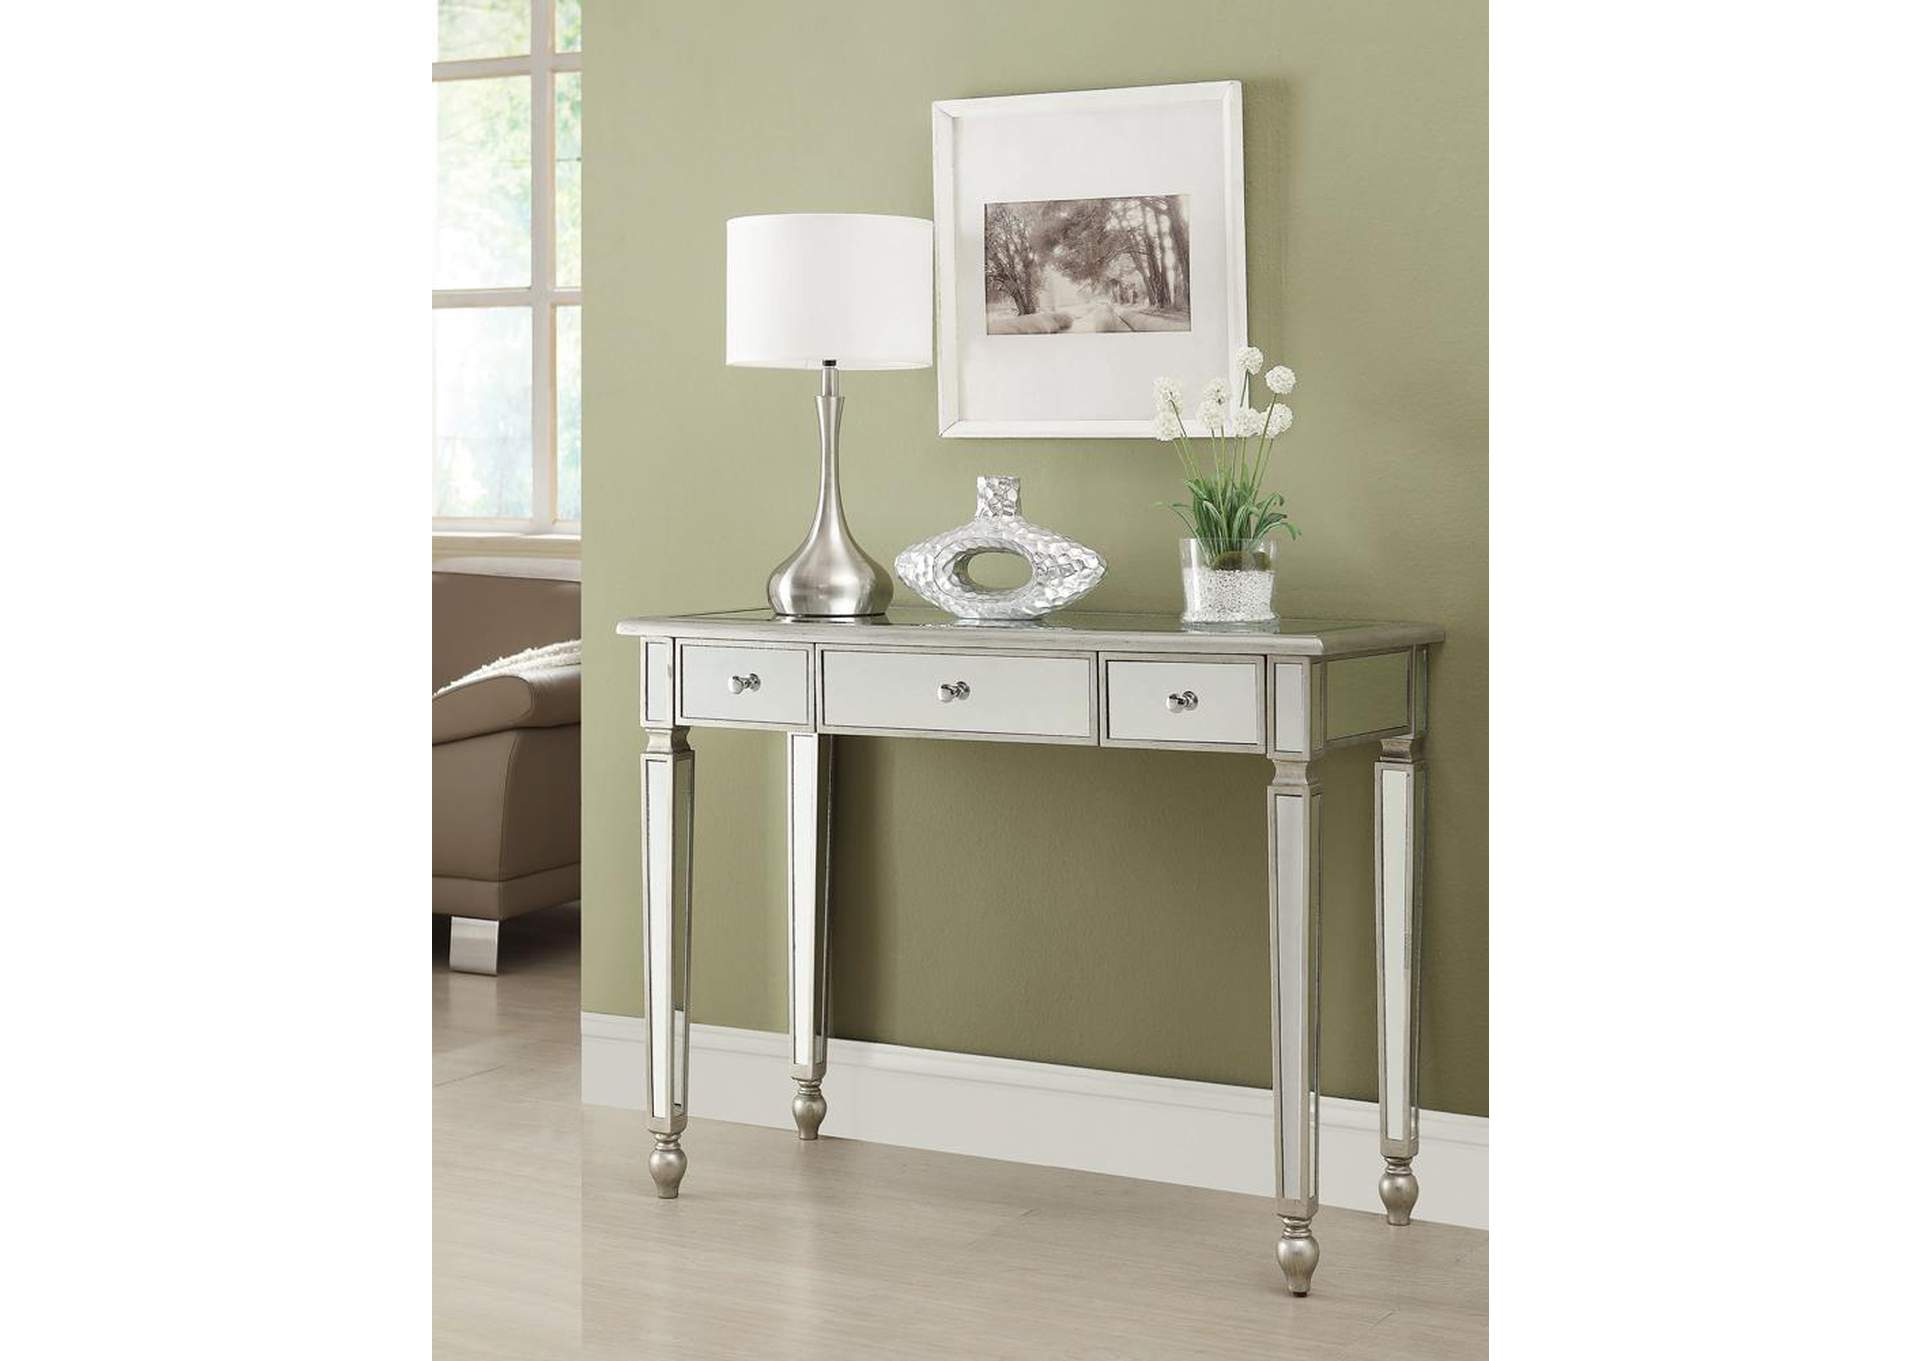 Antique Silver Console Table,Coaster Furniture